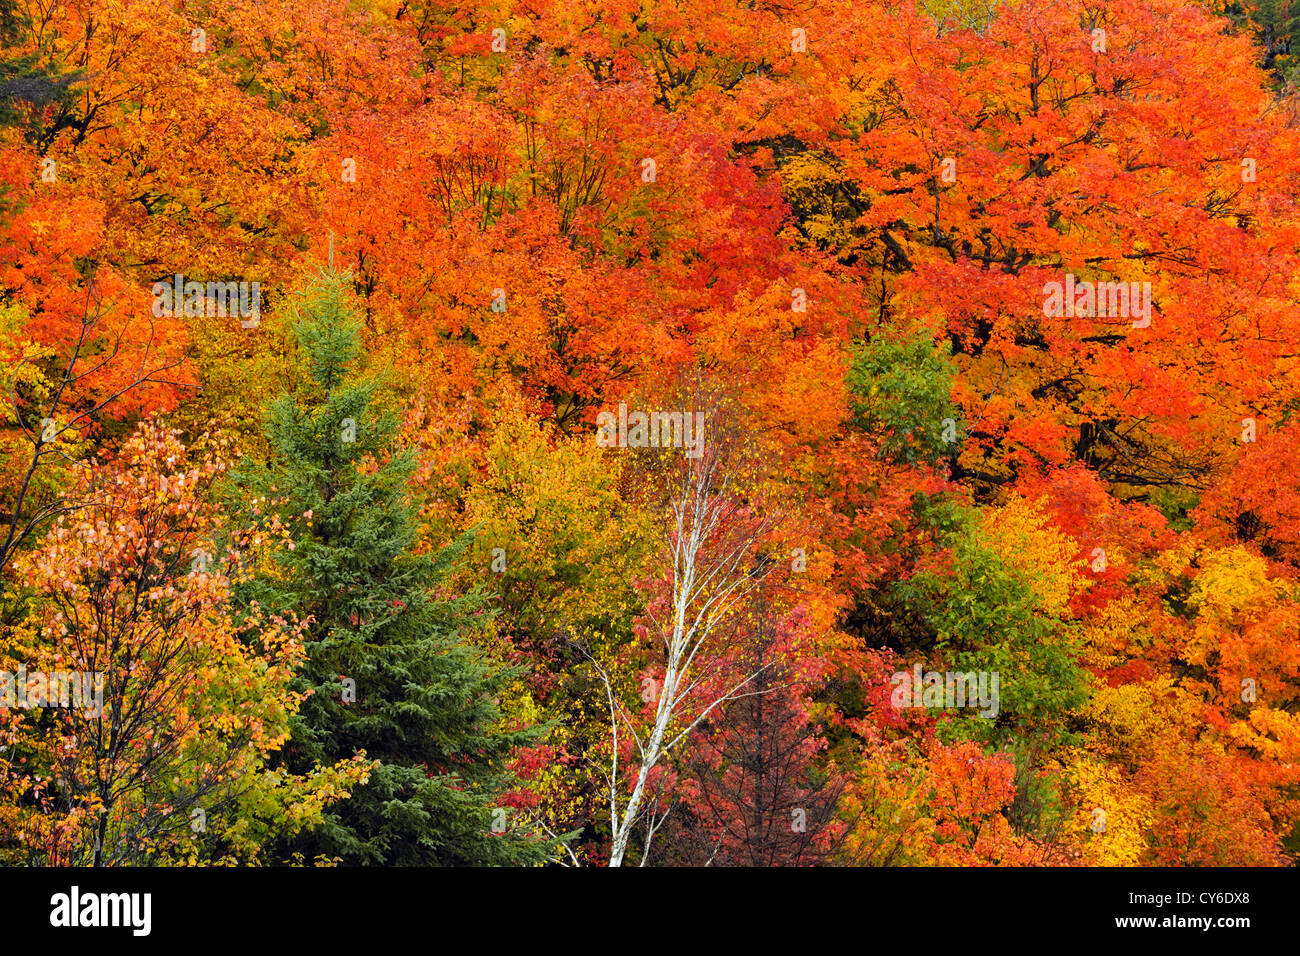 Hillside of autumn maples and spruces, Algonquin Provincial Park, Ontario, Canada - Stock Image